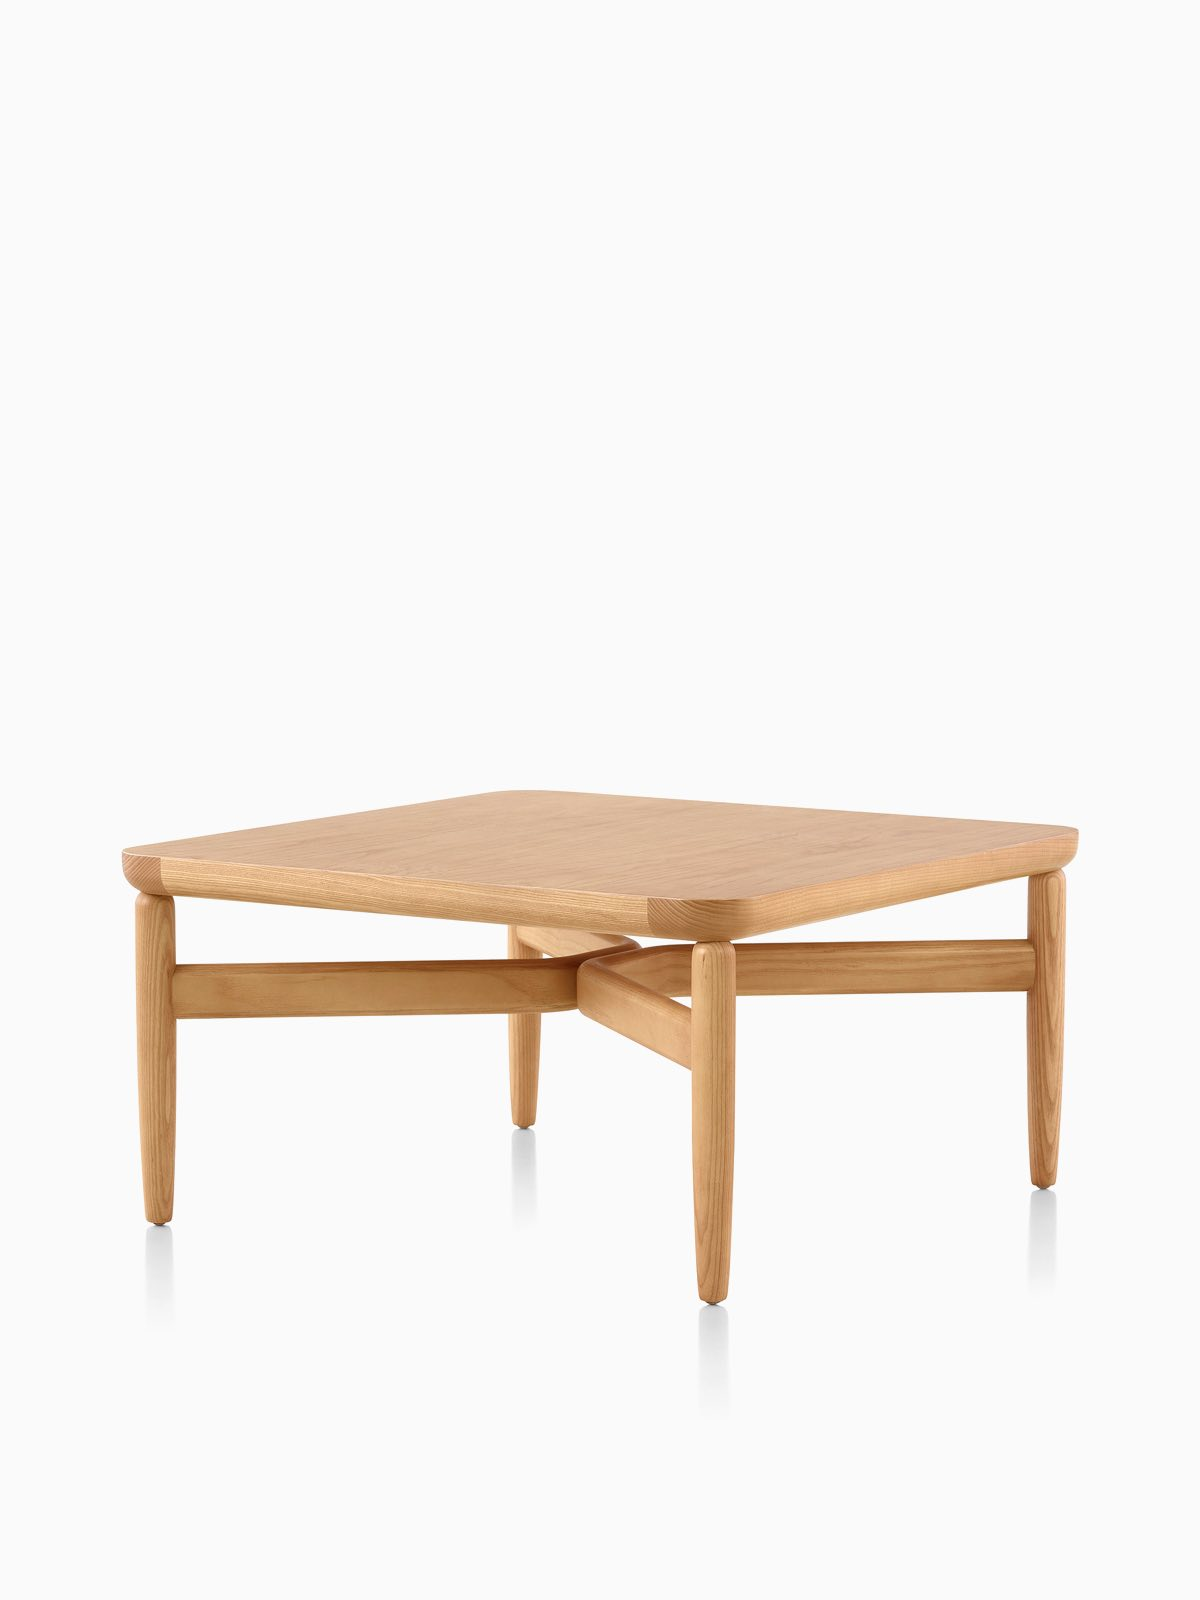 Reframe Tables